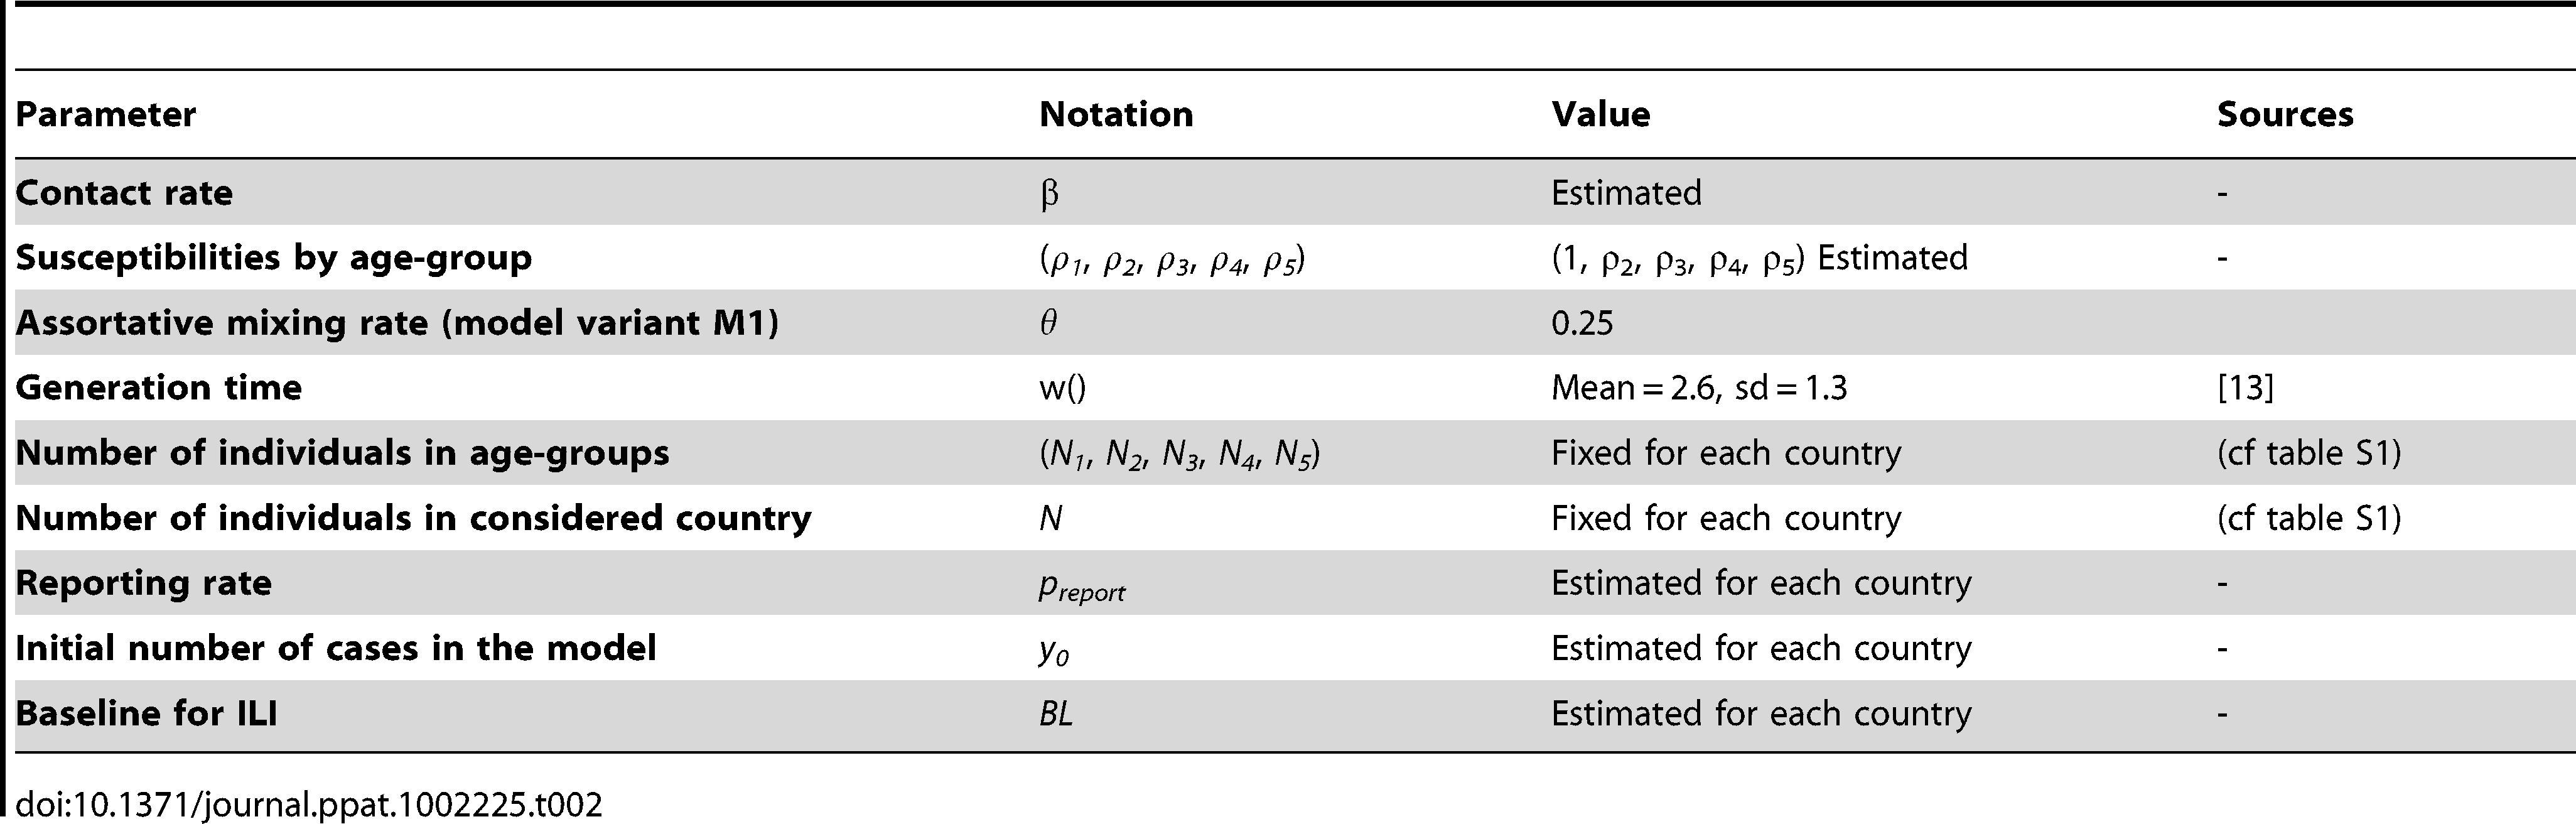 List of model parameters and their values.